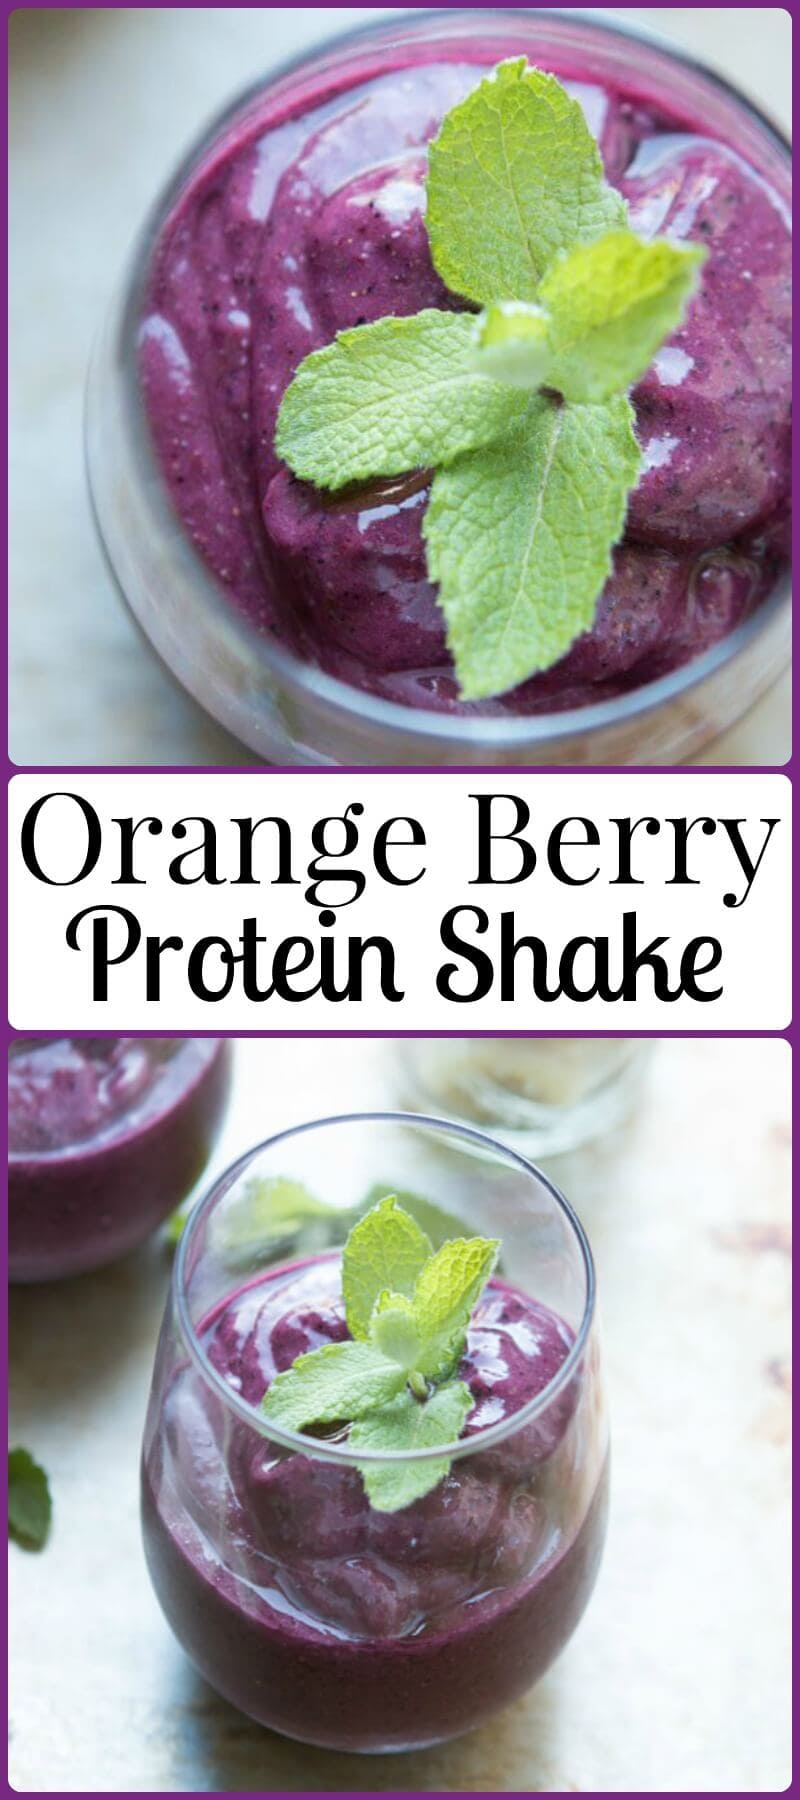 Did you know that oranges can help you to have a happier and healthier day? Our bright orange berry protein shake proves it! ohsweetbasil.com